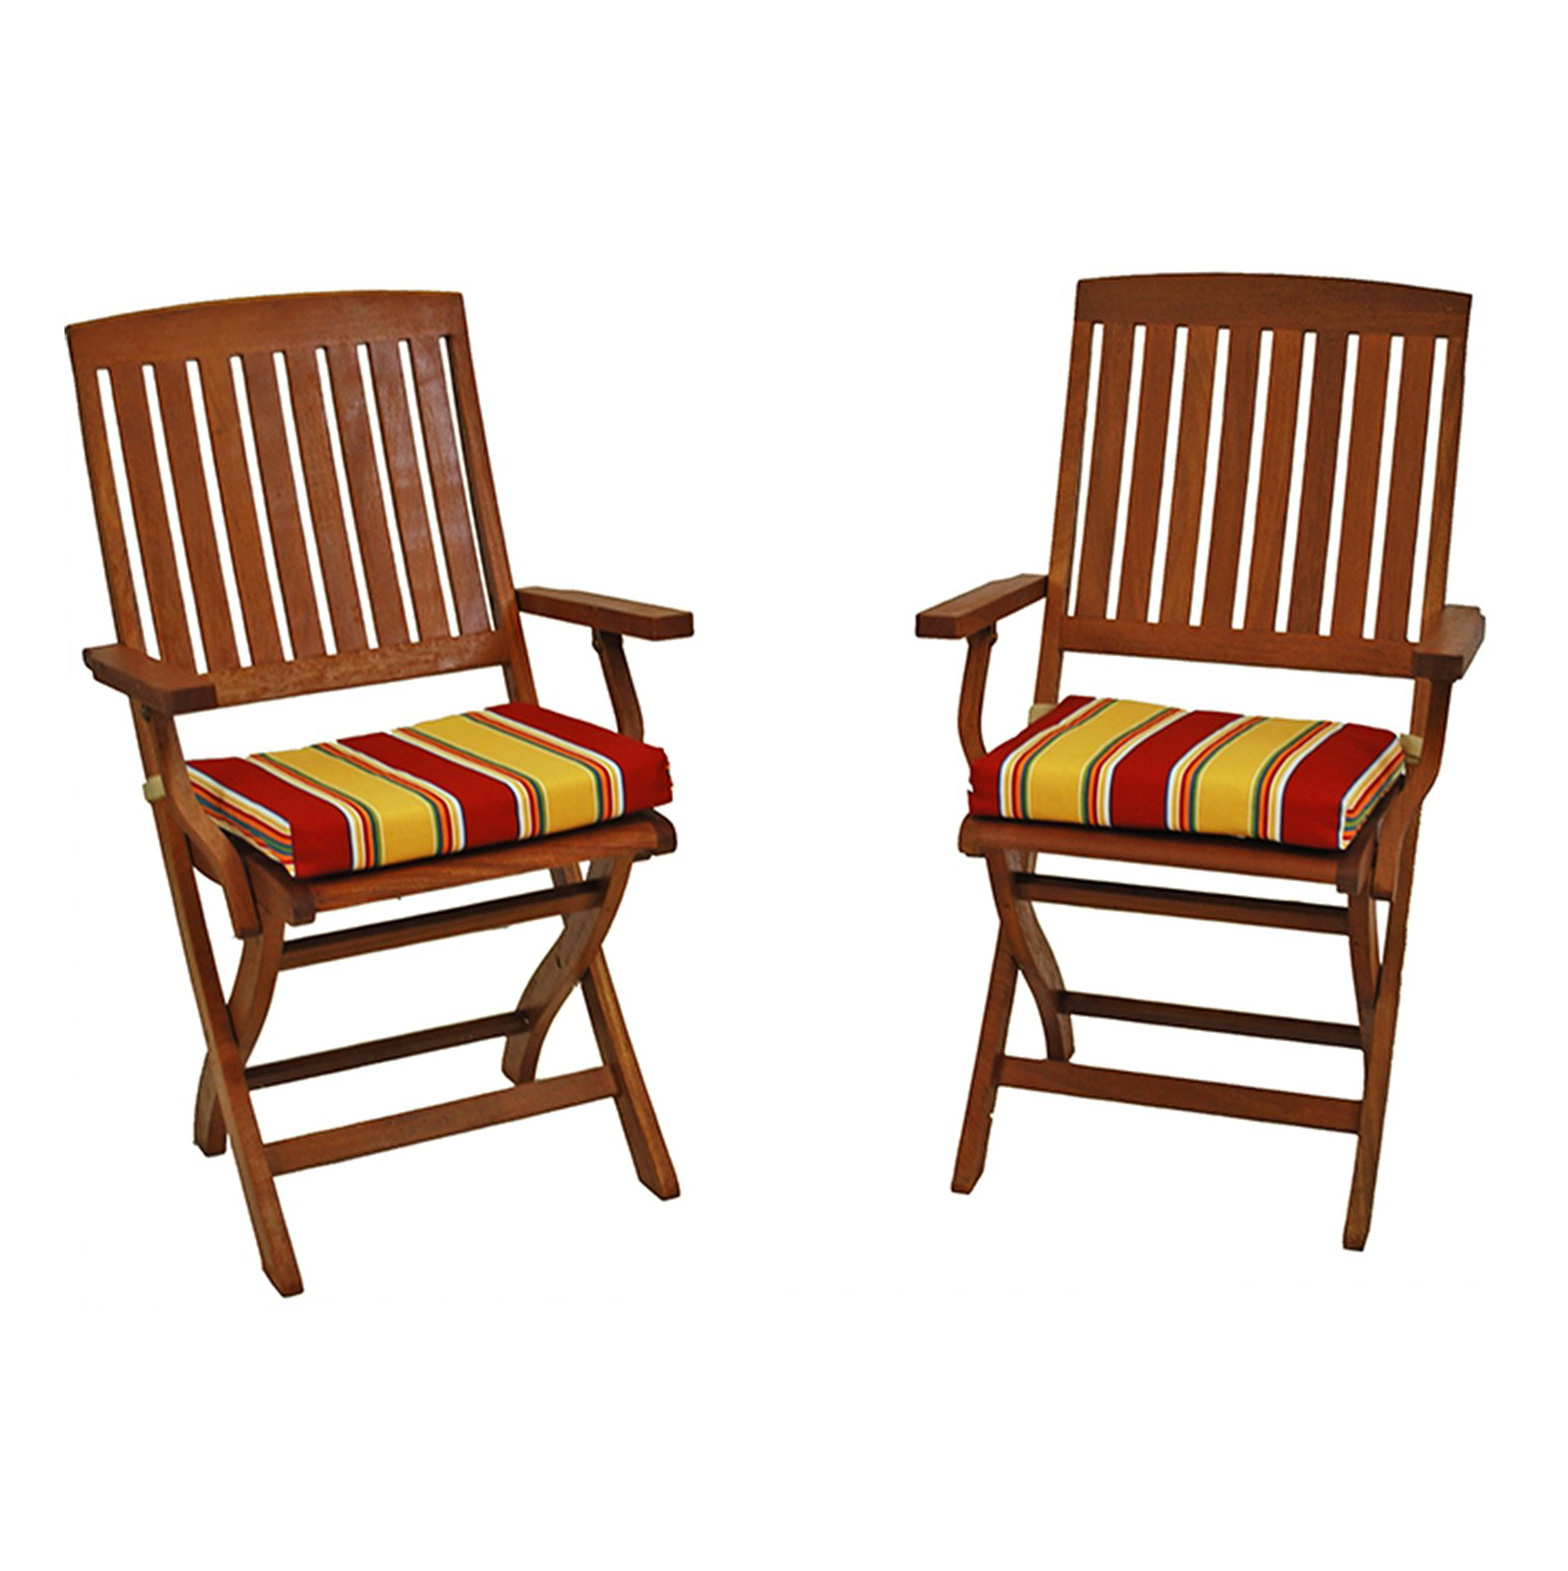 Cheap Folding Chairs Folding Chair Cushions Cheap Home Design Ideas